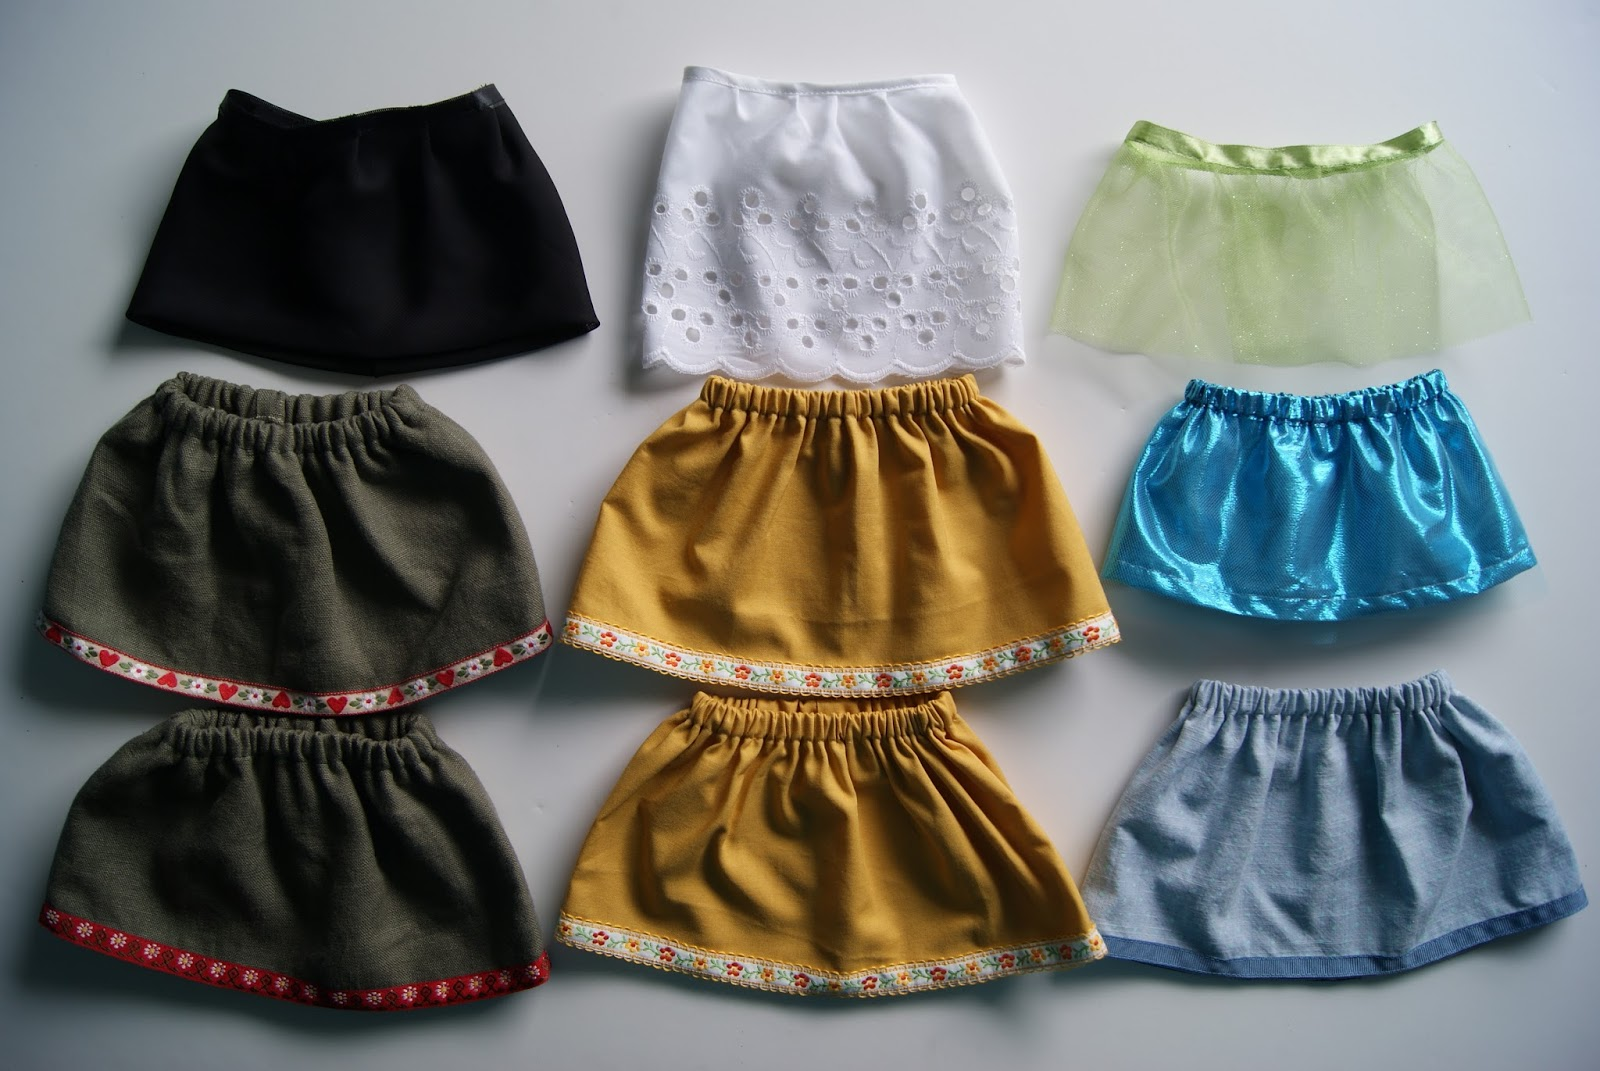 18-inch doll skirts giveaway at nest full of eggs